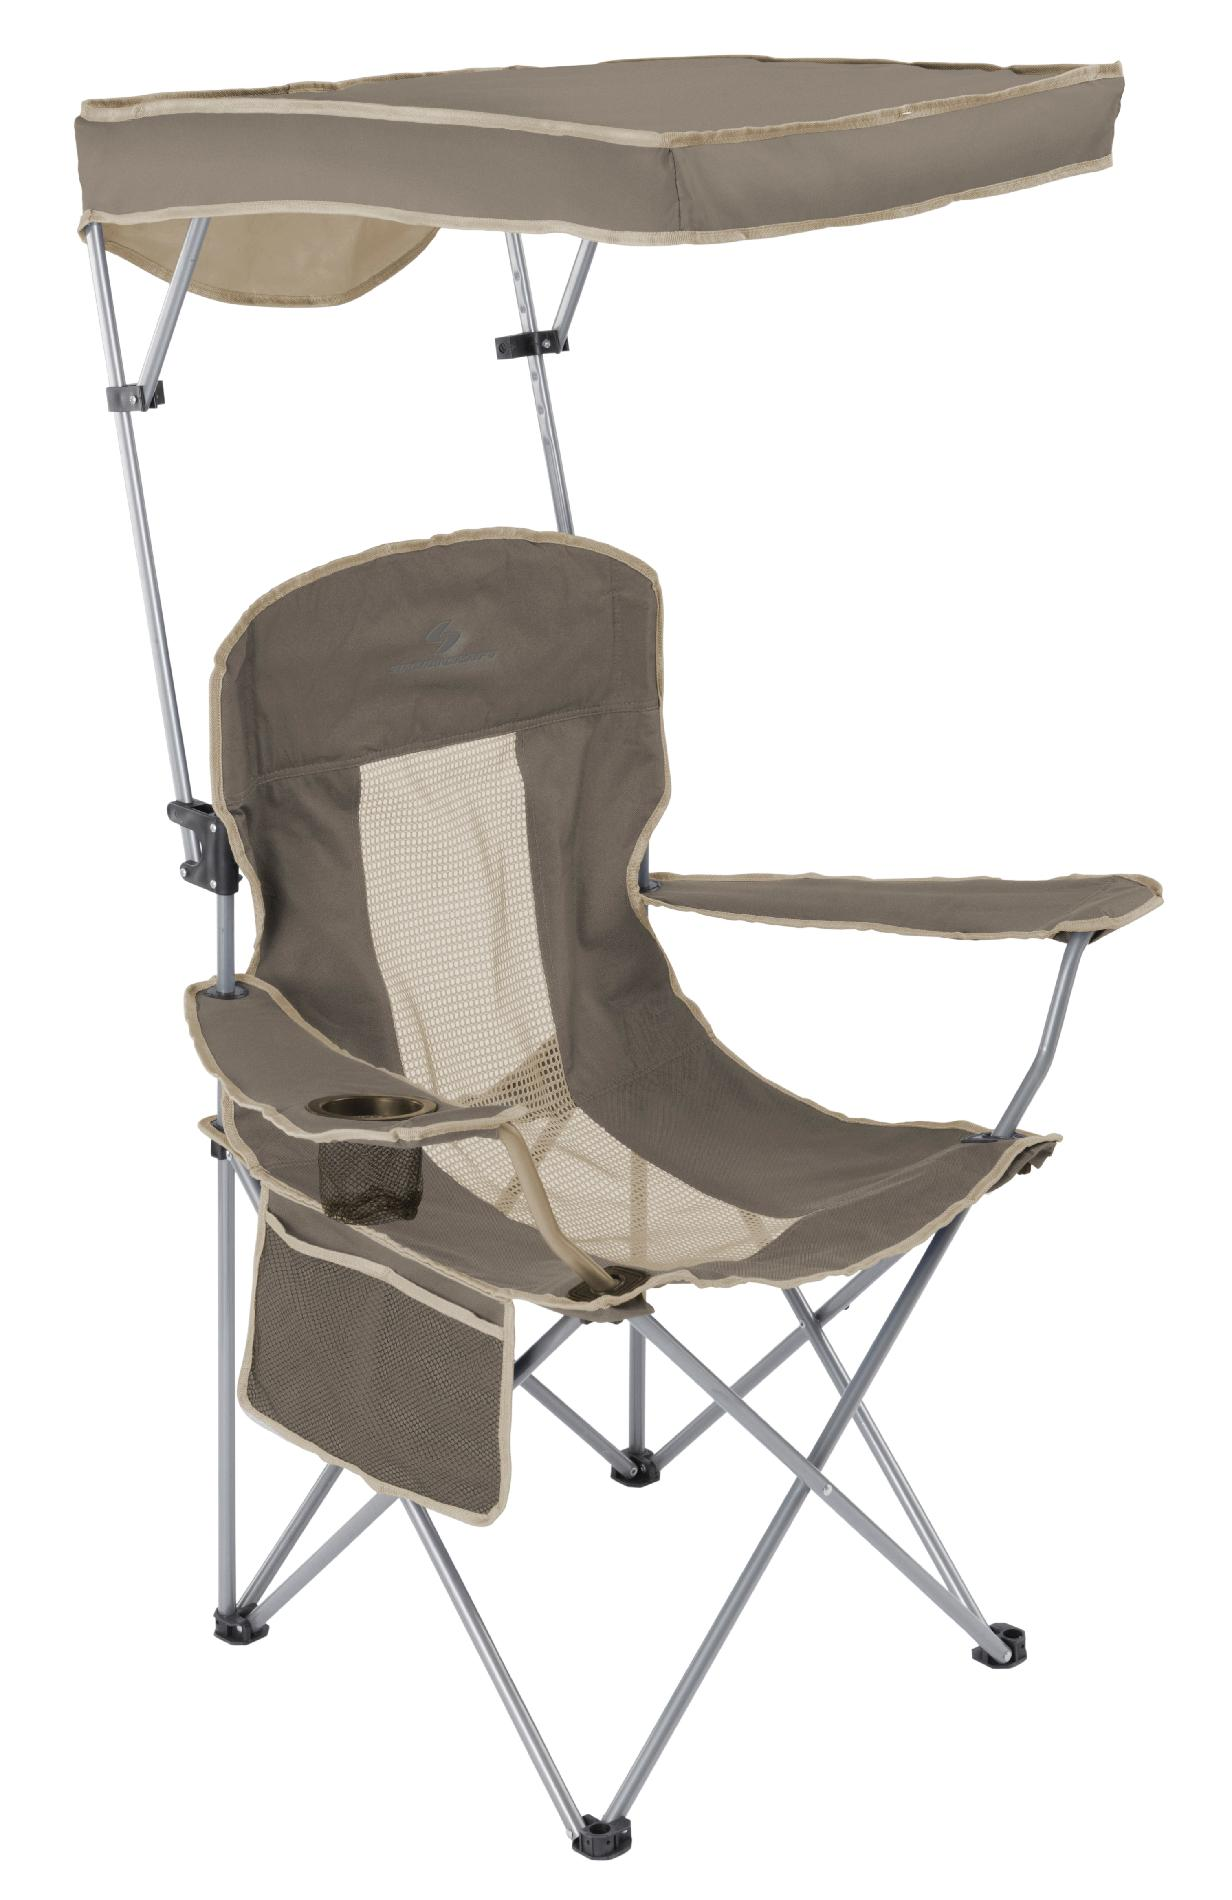 Camping Chair With Canopy Sportcraft Cooler Quad Chair With Canopy